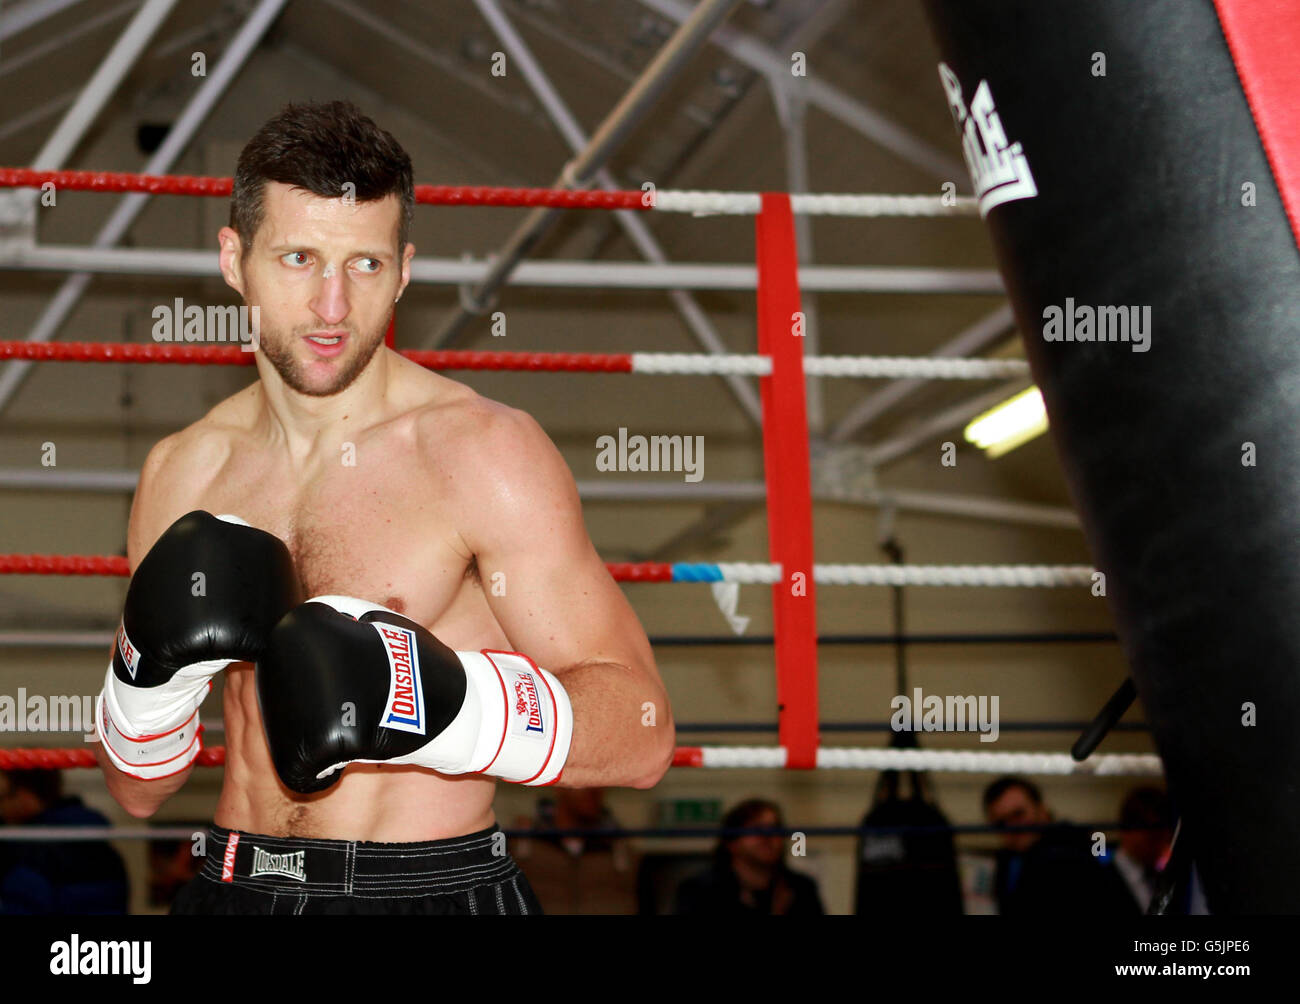 Phoenix amateur boxing